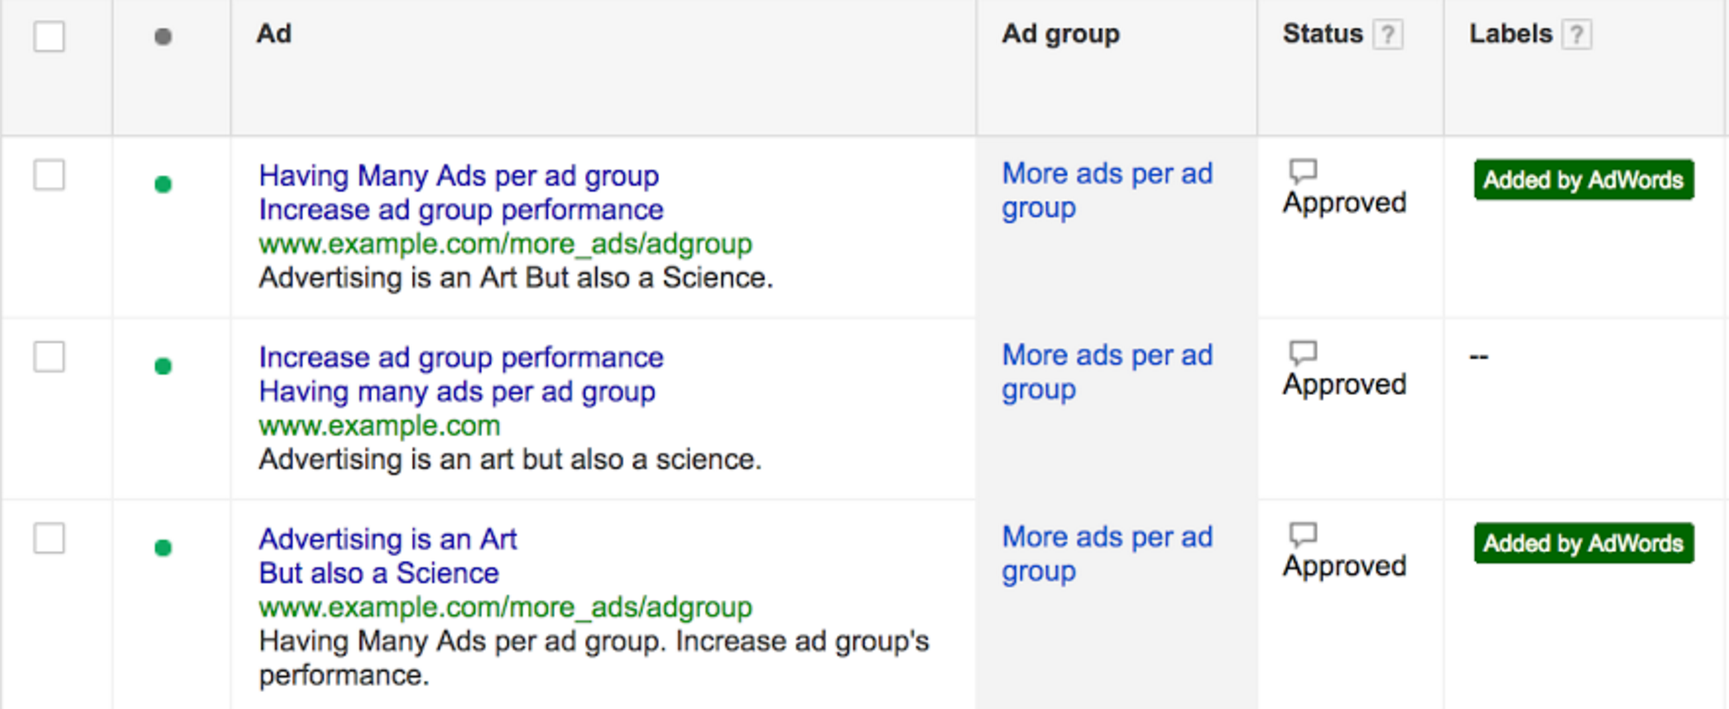 Ads added by Adwords bots